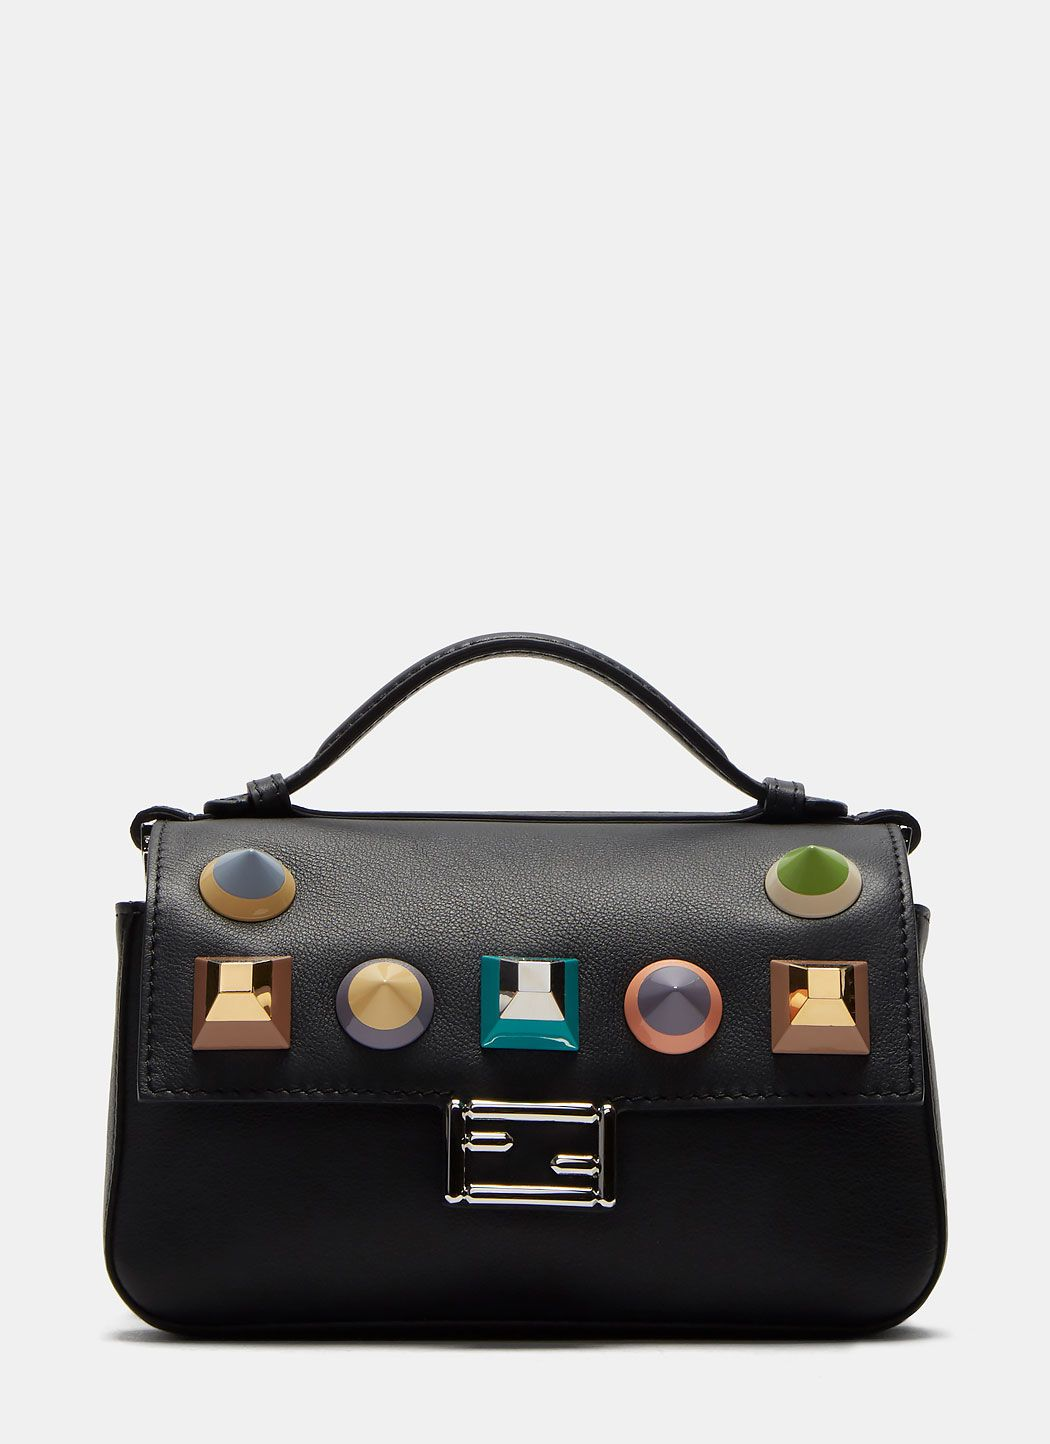 120490ae0d2c ... promo code explore latest handpicked womenswear arrivals featuring fendi  micro baguette geometric studded double sided bag cheap fendi side ...